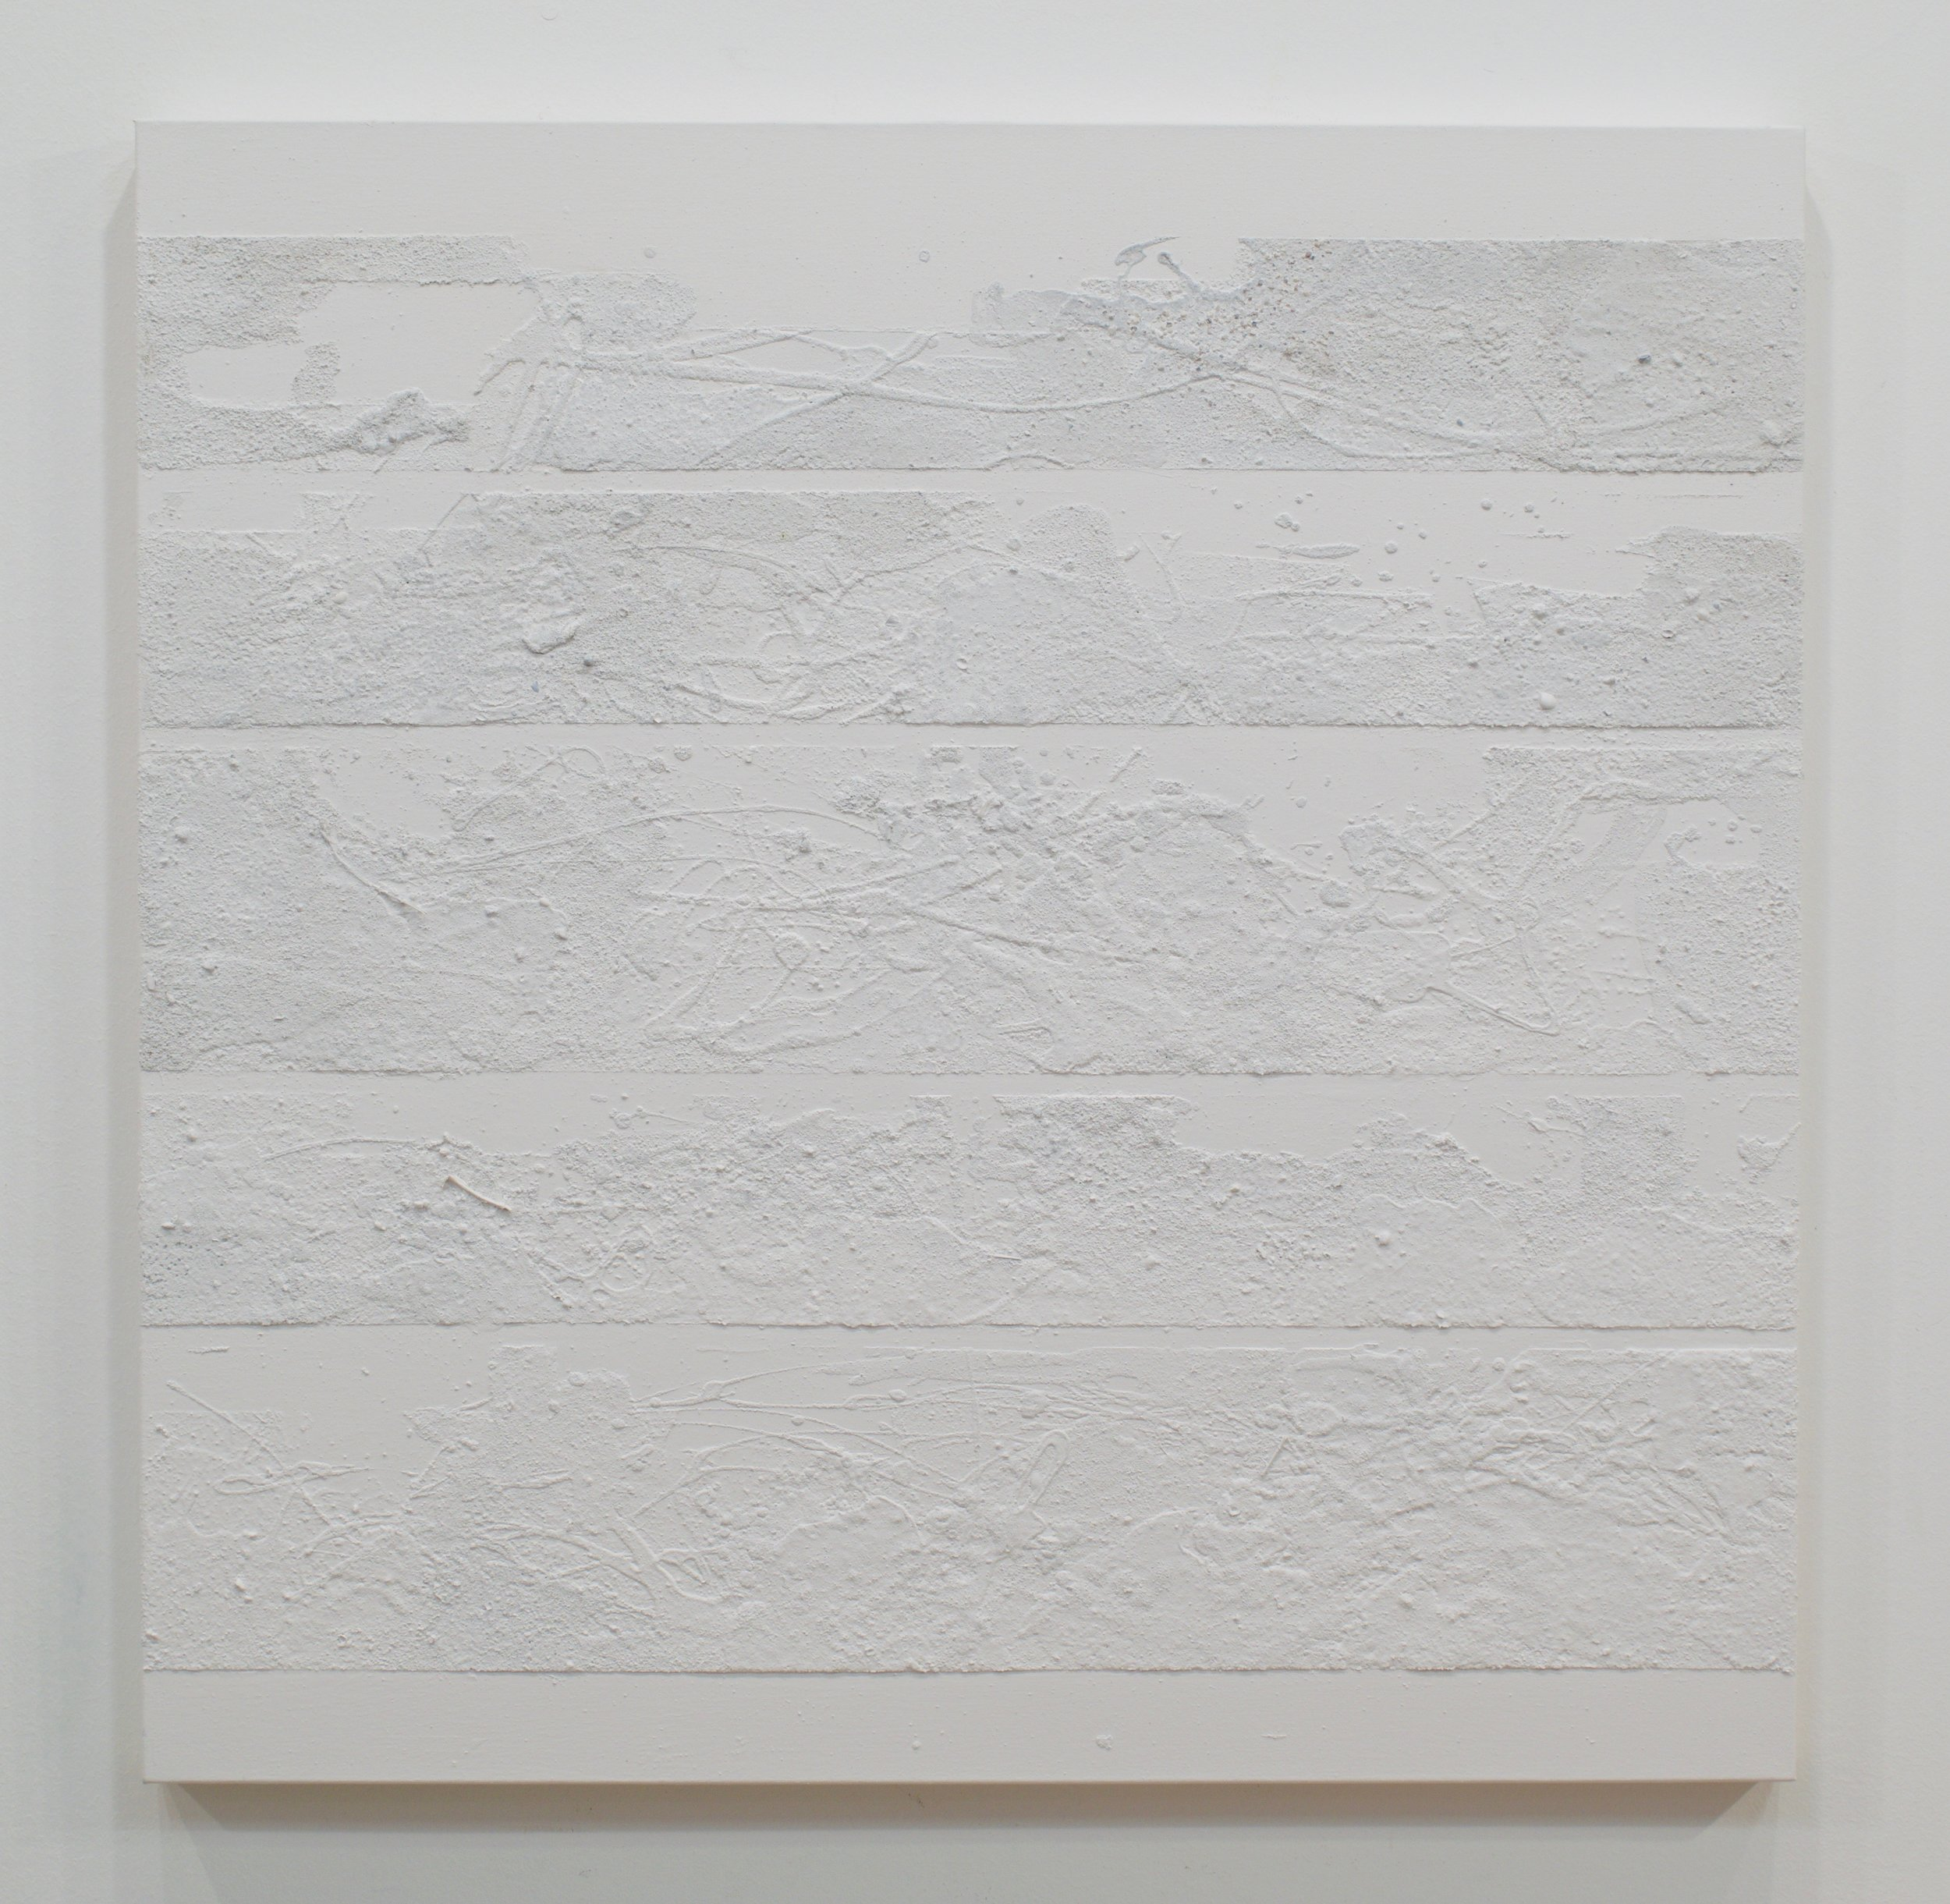 "MARK VAN WAGNER, ""WHITE SANDBARS"", 2017. SAND ON CANVAS. 36X36 IN."